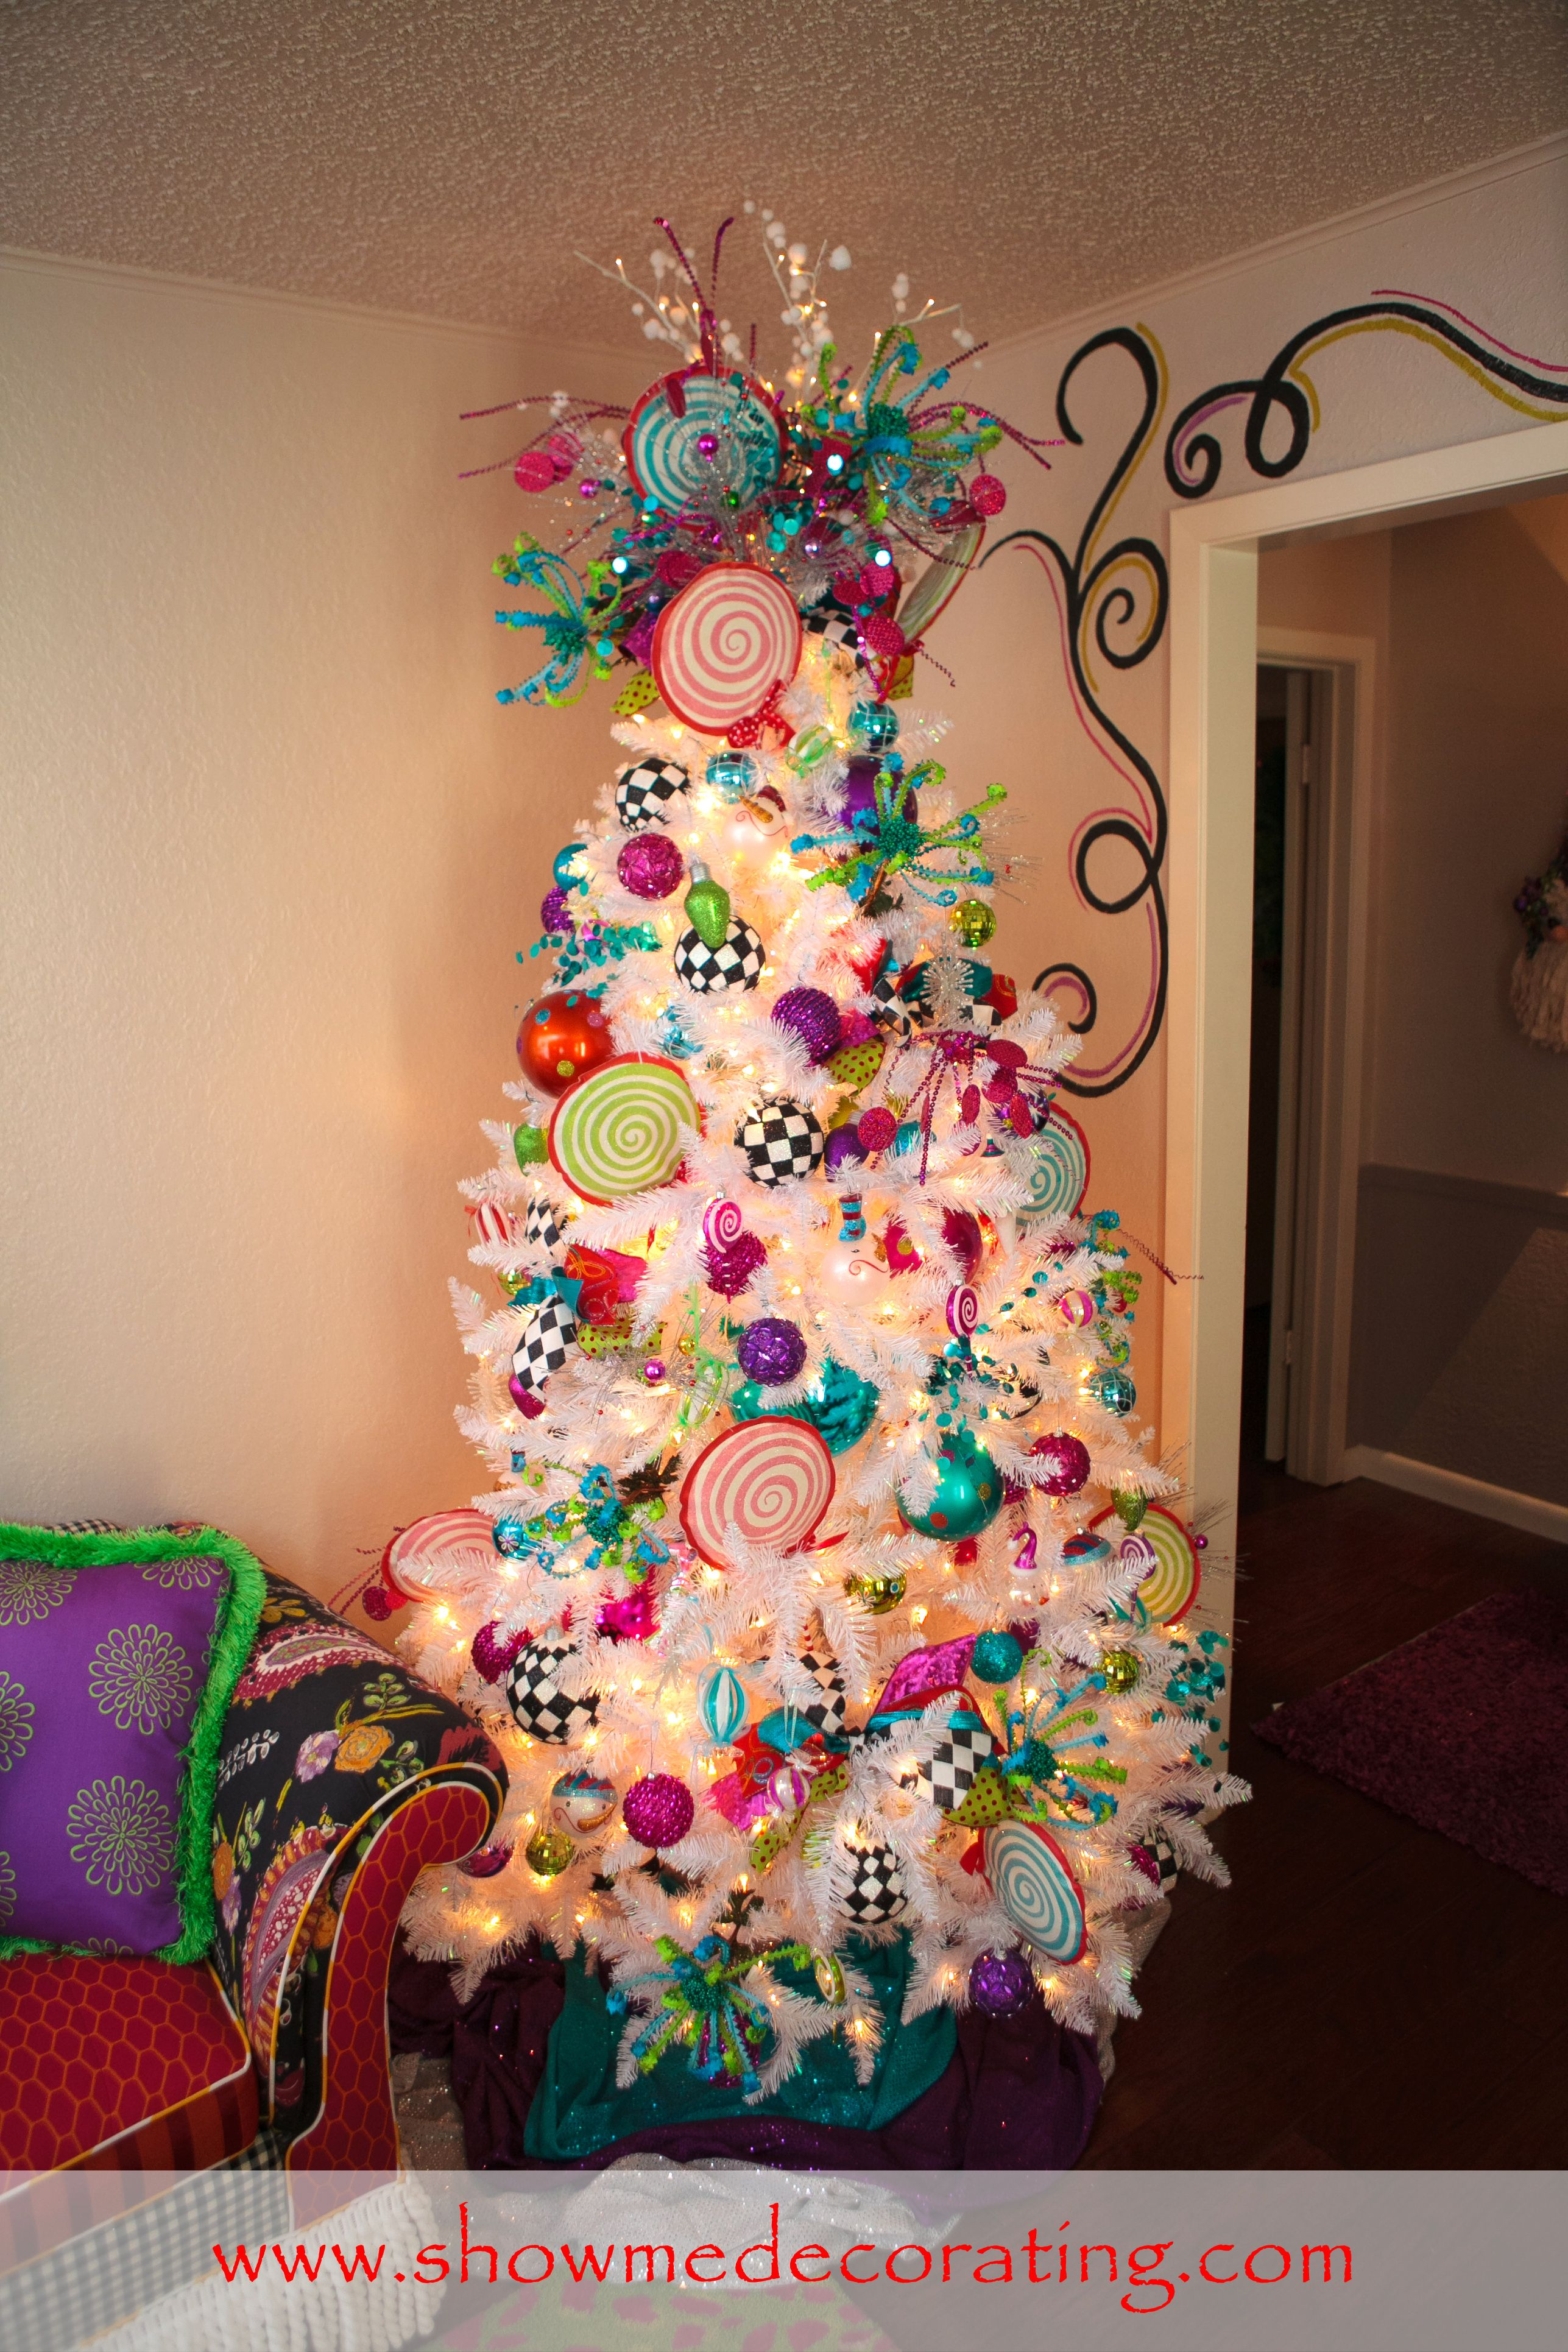 WhiteChristmas ChristmasTree Colorful ornaments and ribbon bring a